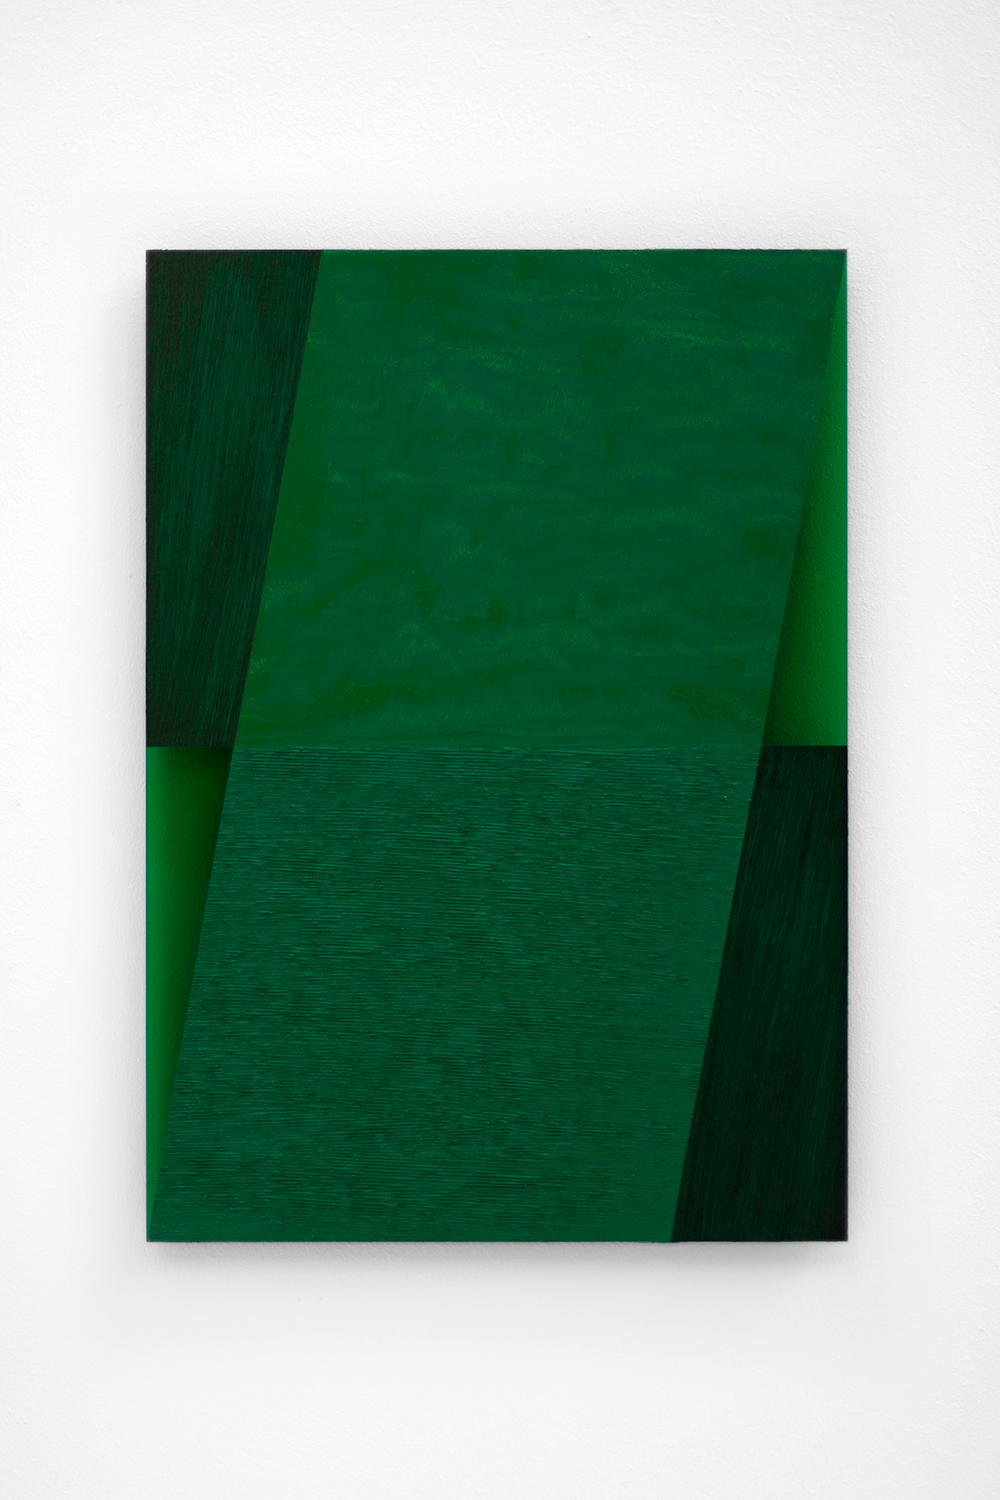 The Green Series nr. 14 42 x 29,7 cm ( A3 Size ) Oil and arylic on green perspex